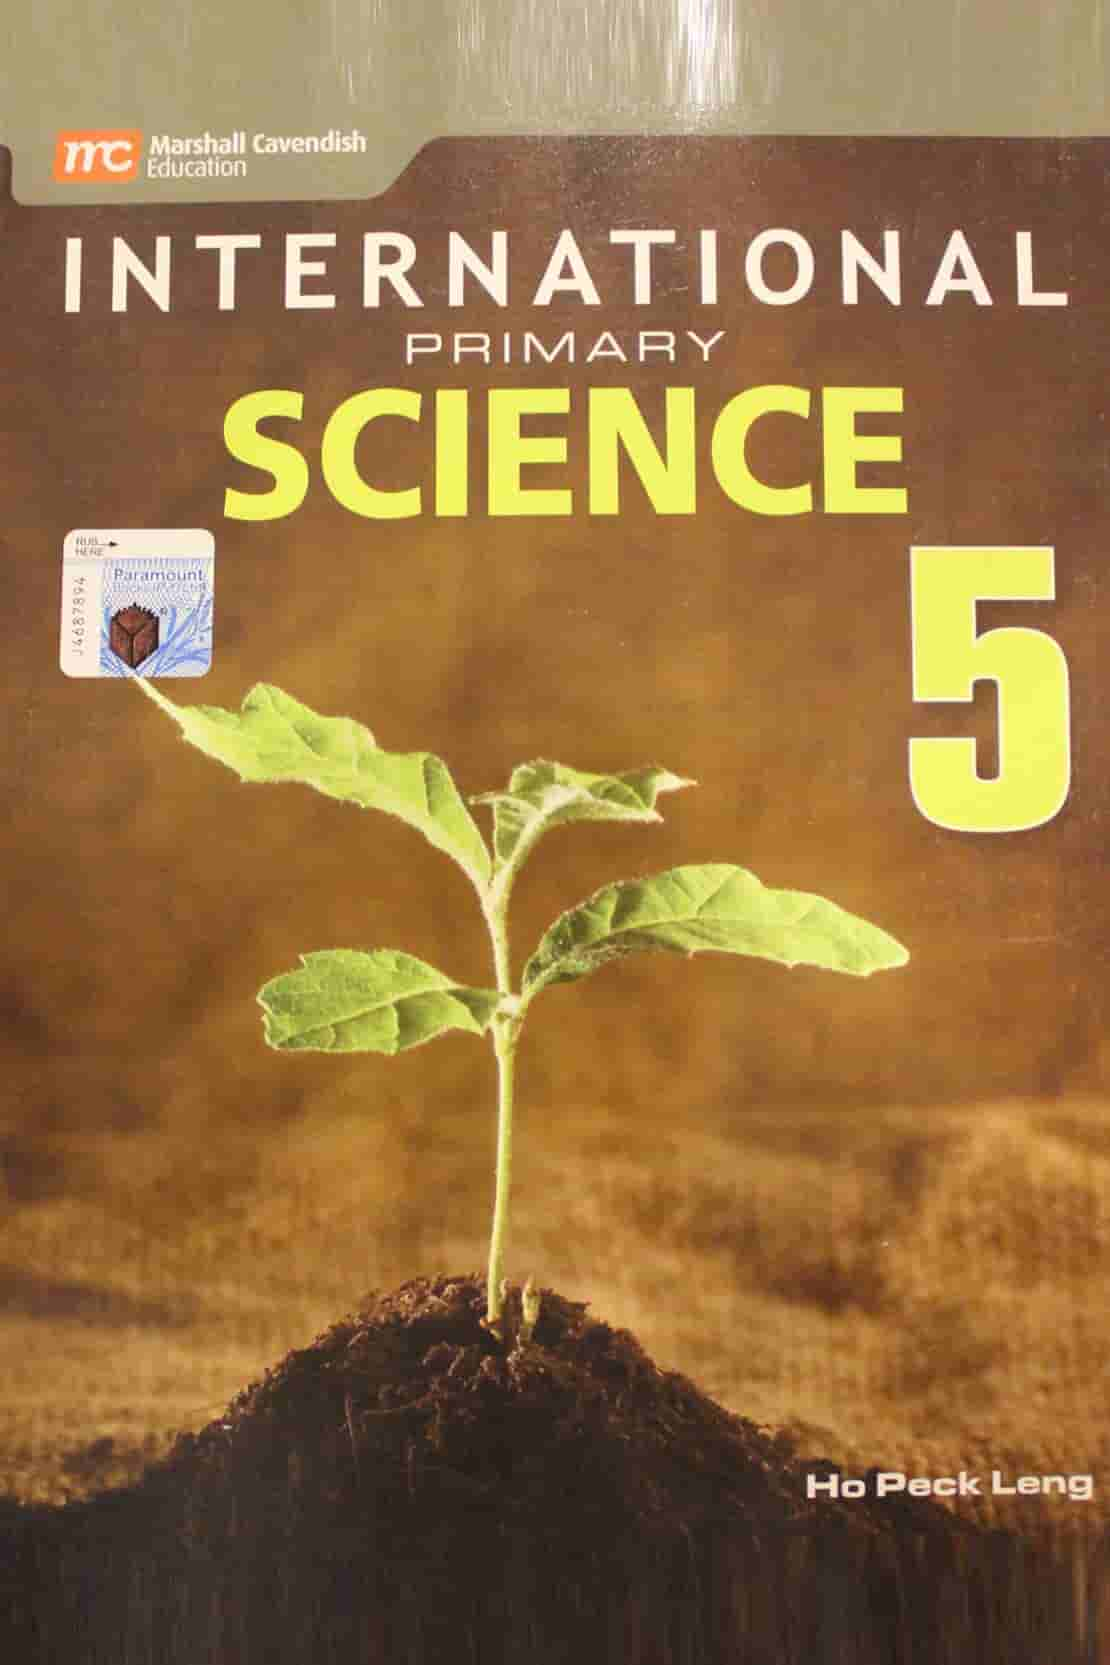 INTERNATIONAL PRIMARY SCIENCE TEXTBOOK 5